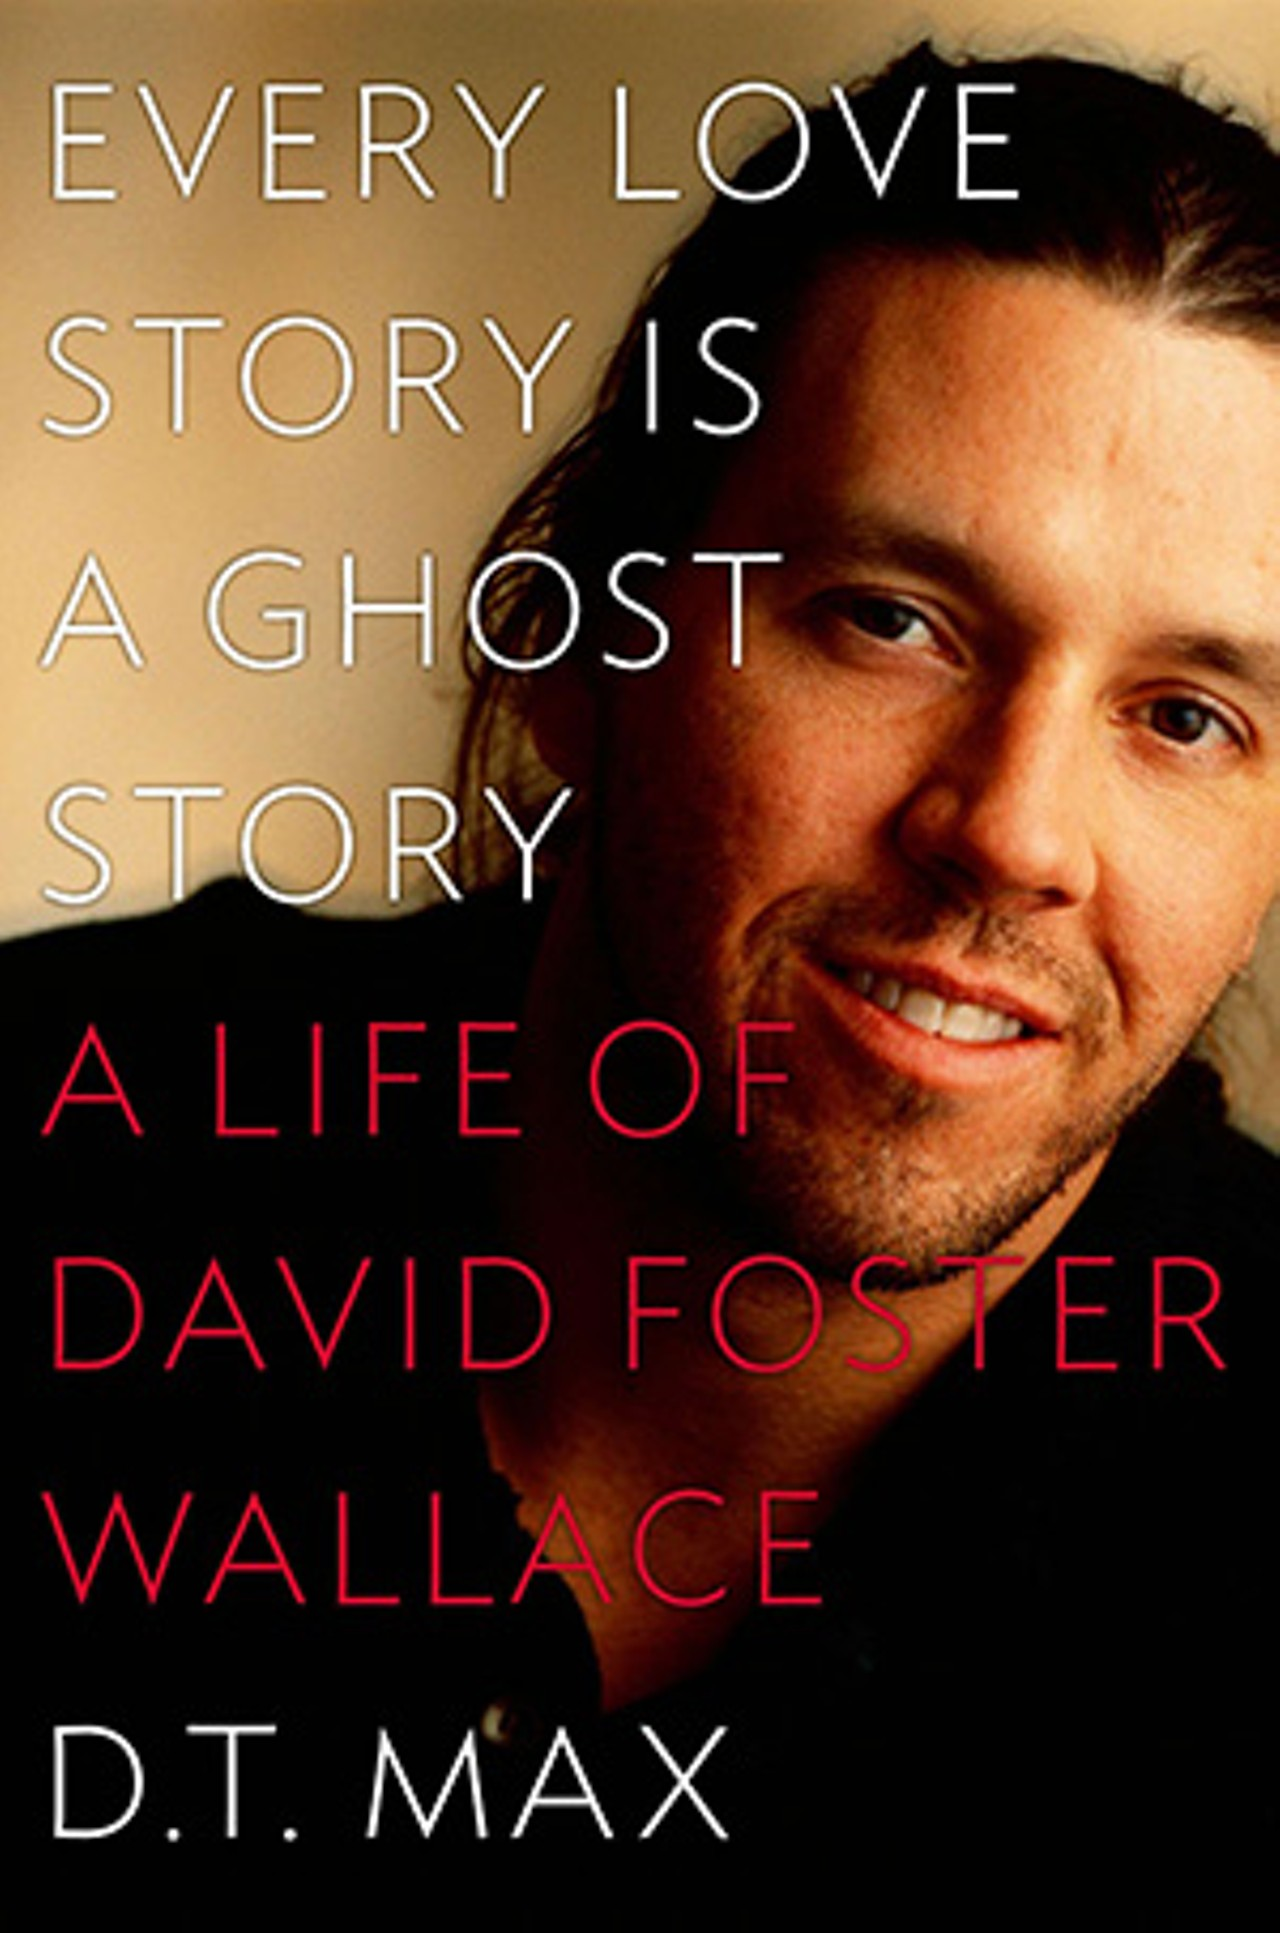 004 David Foster Wallace Essay Everylovestoryisaghoststory Singular On Television Consider Critical Essays This Is Water Full